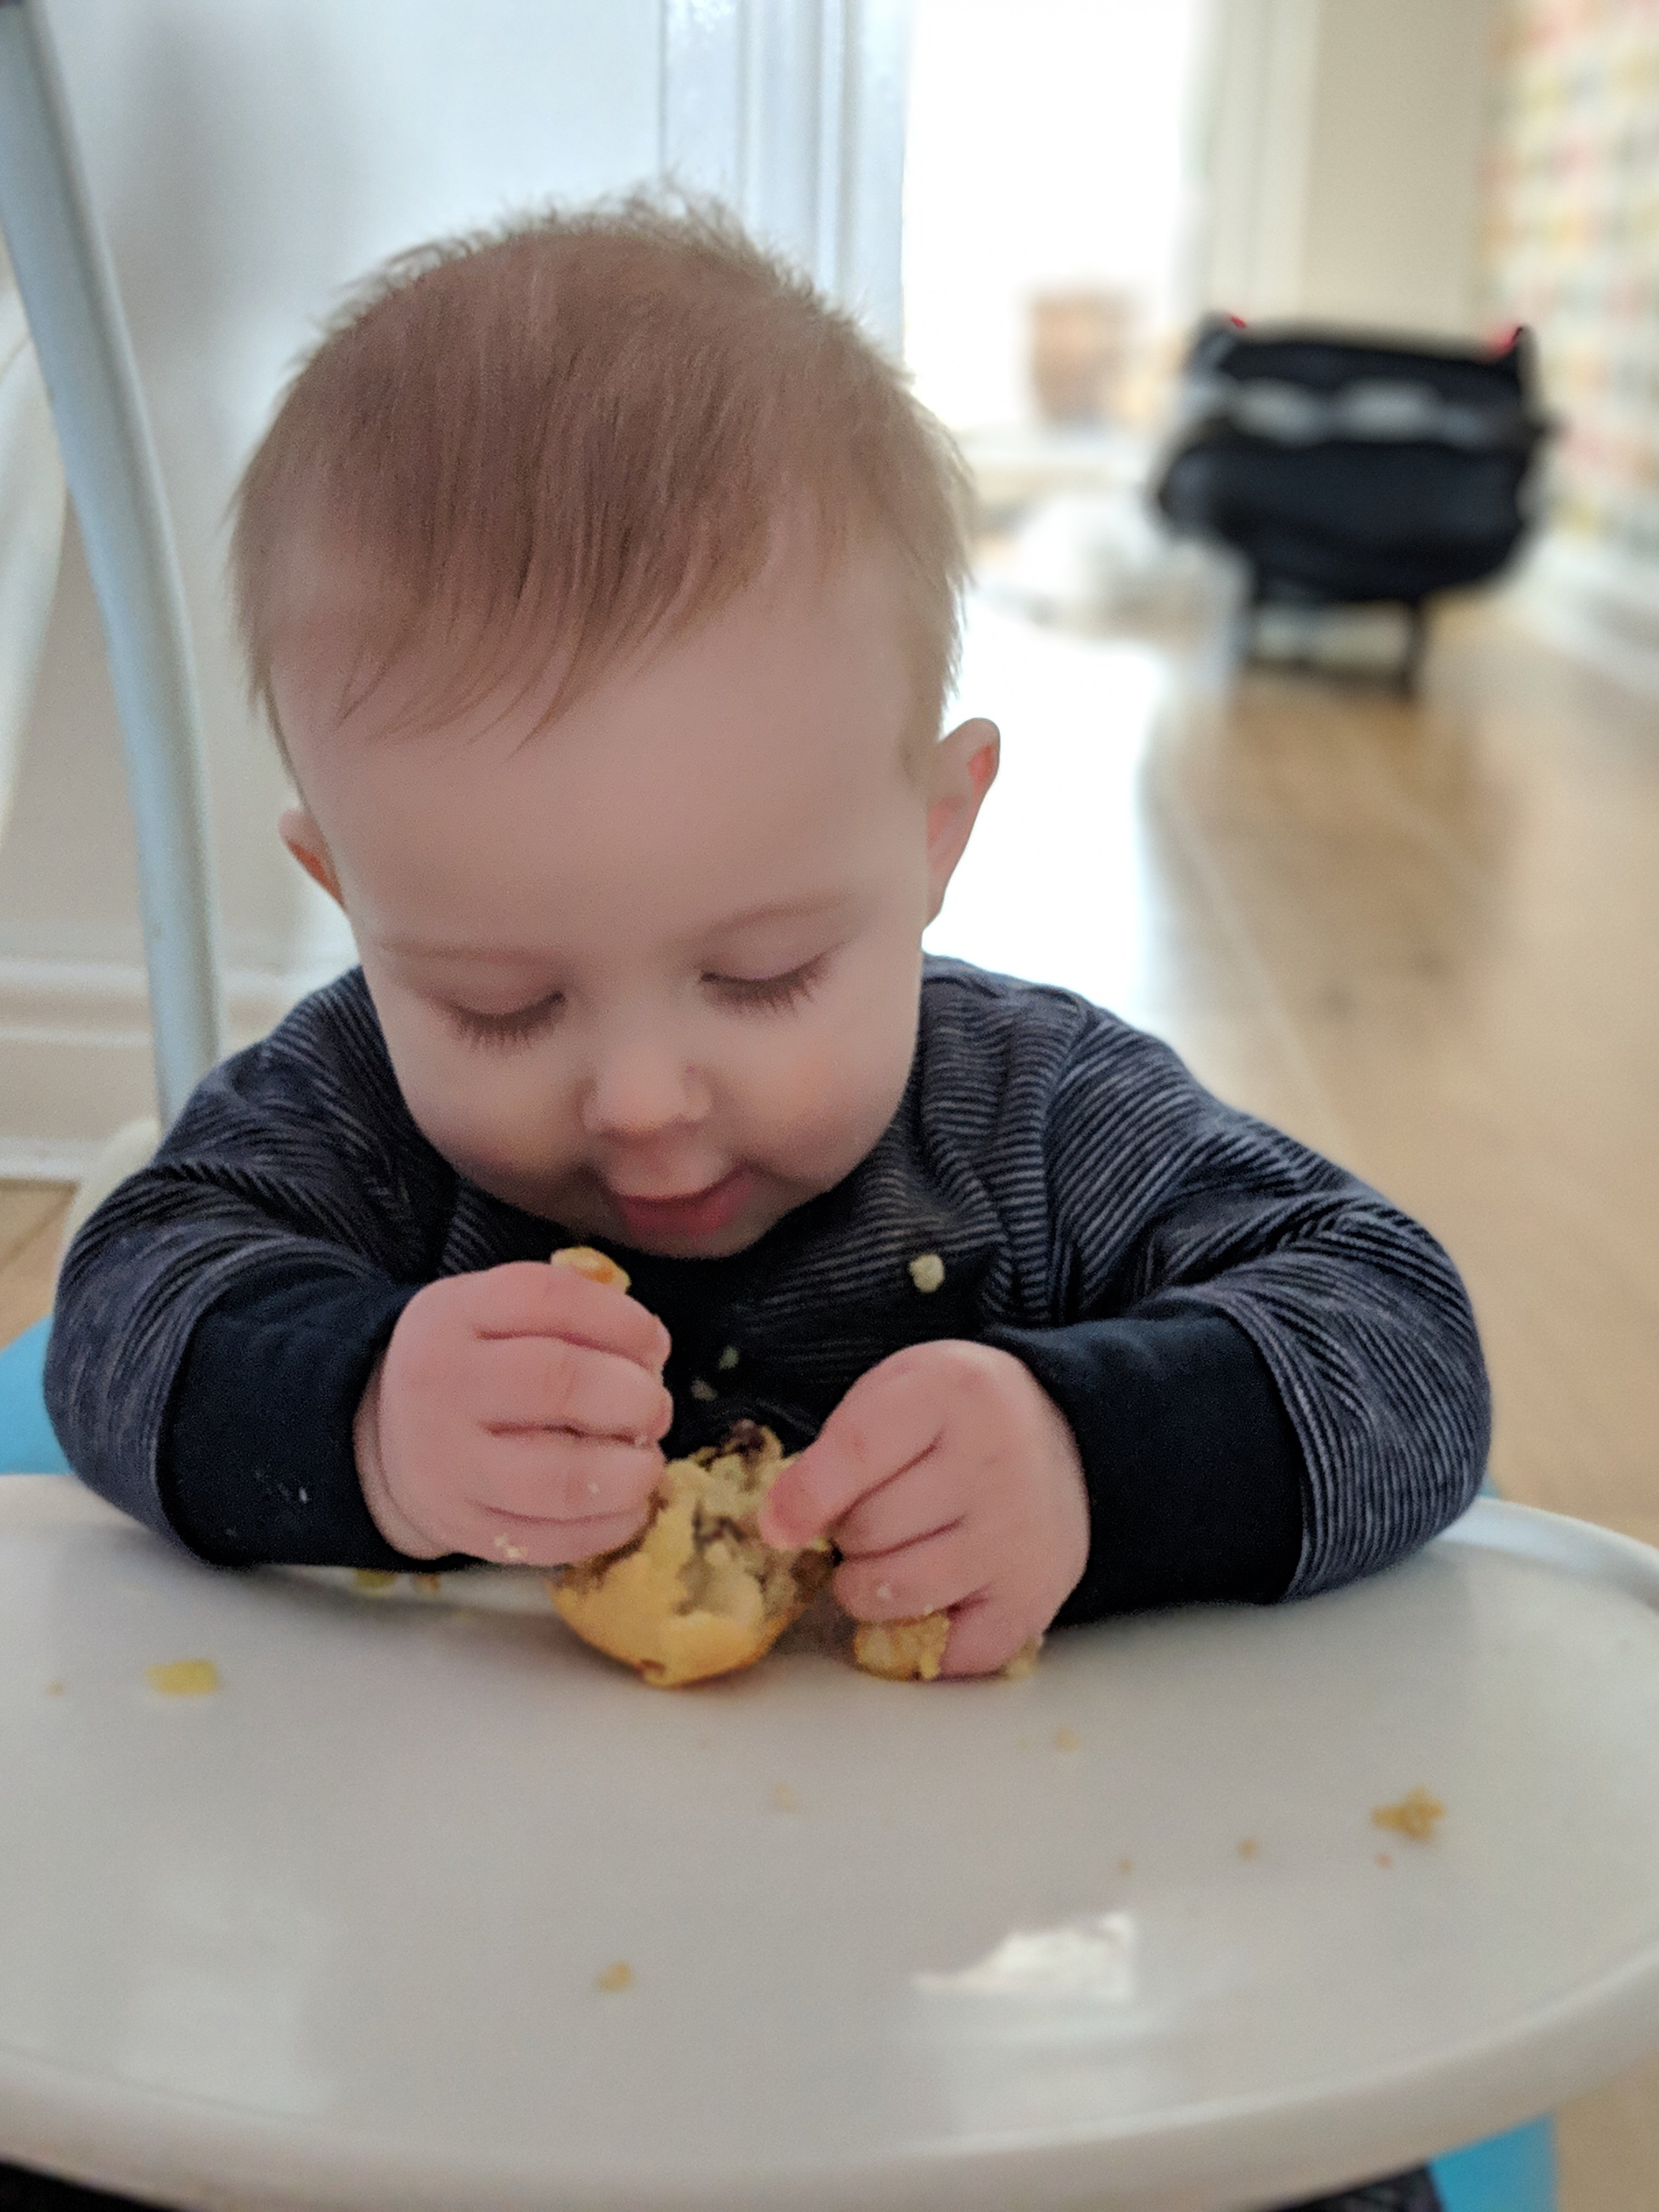 baby eating BLW muffin in high chair